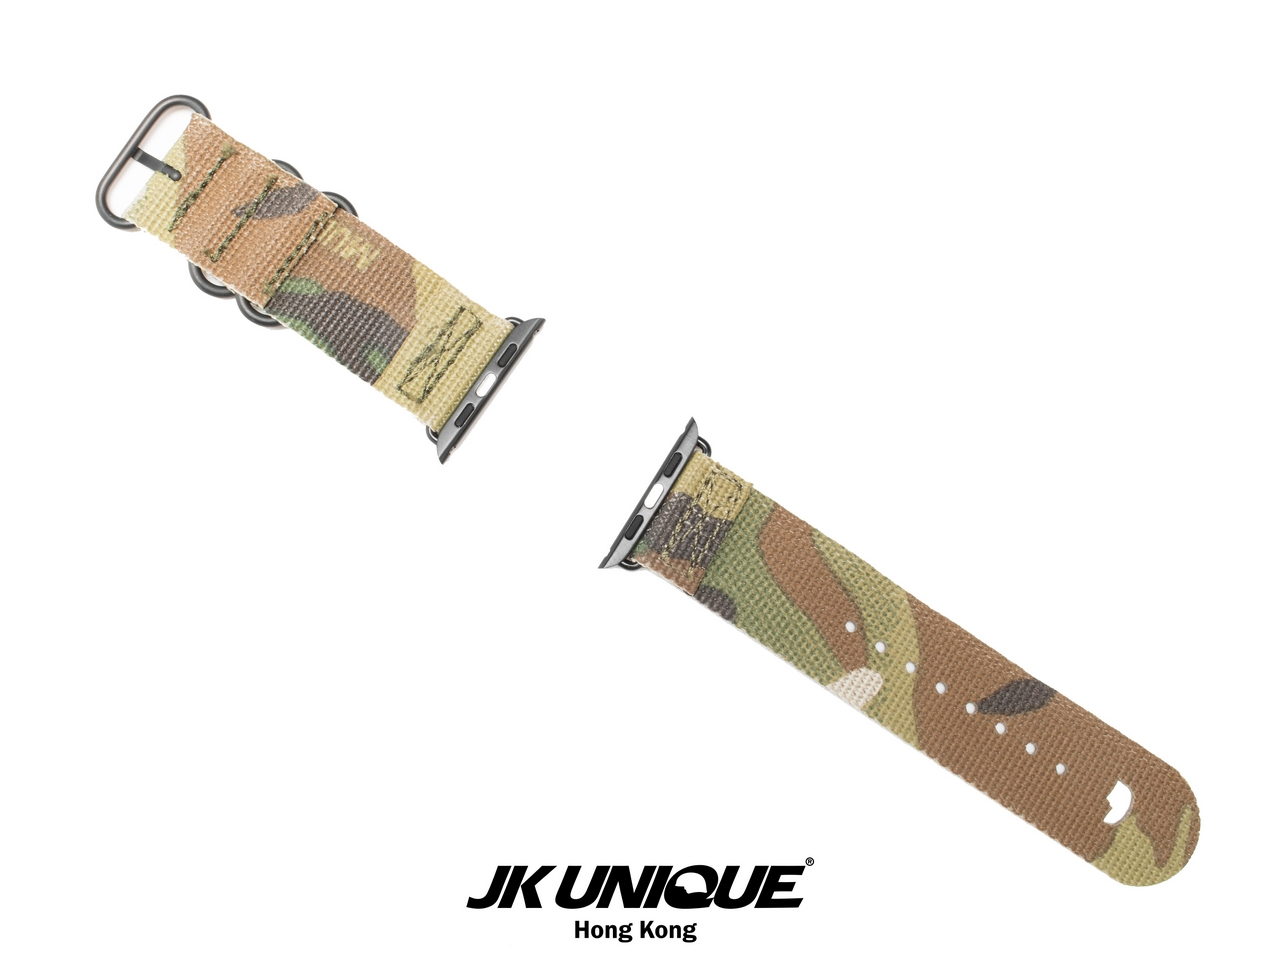 JK-UNIQUE-CAMO-NATO-Apple-Watch-Strap-42mm-BK-Multicam-2 (1280).jpg